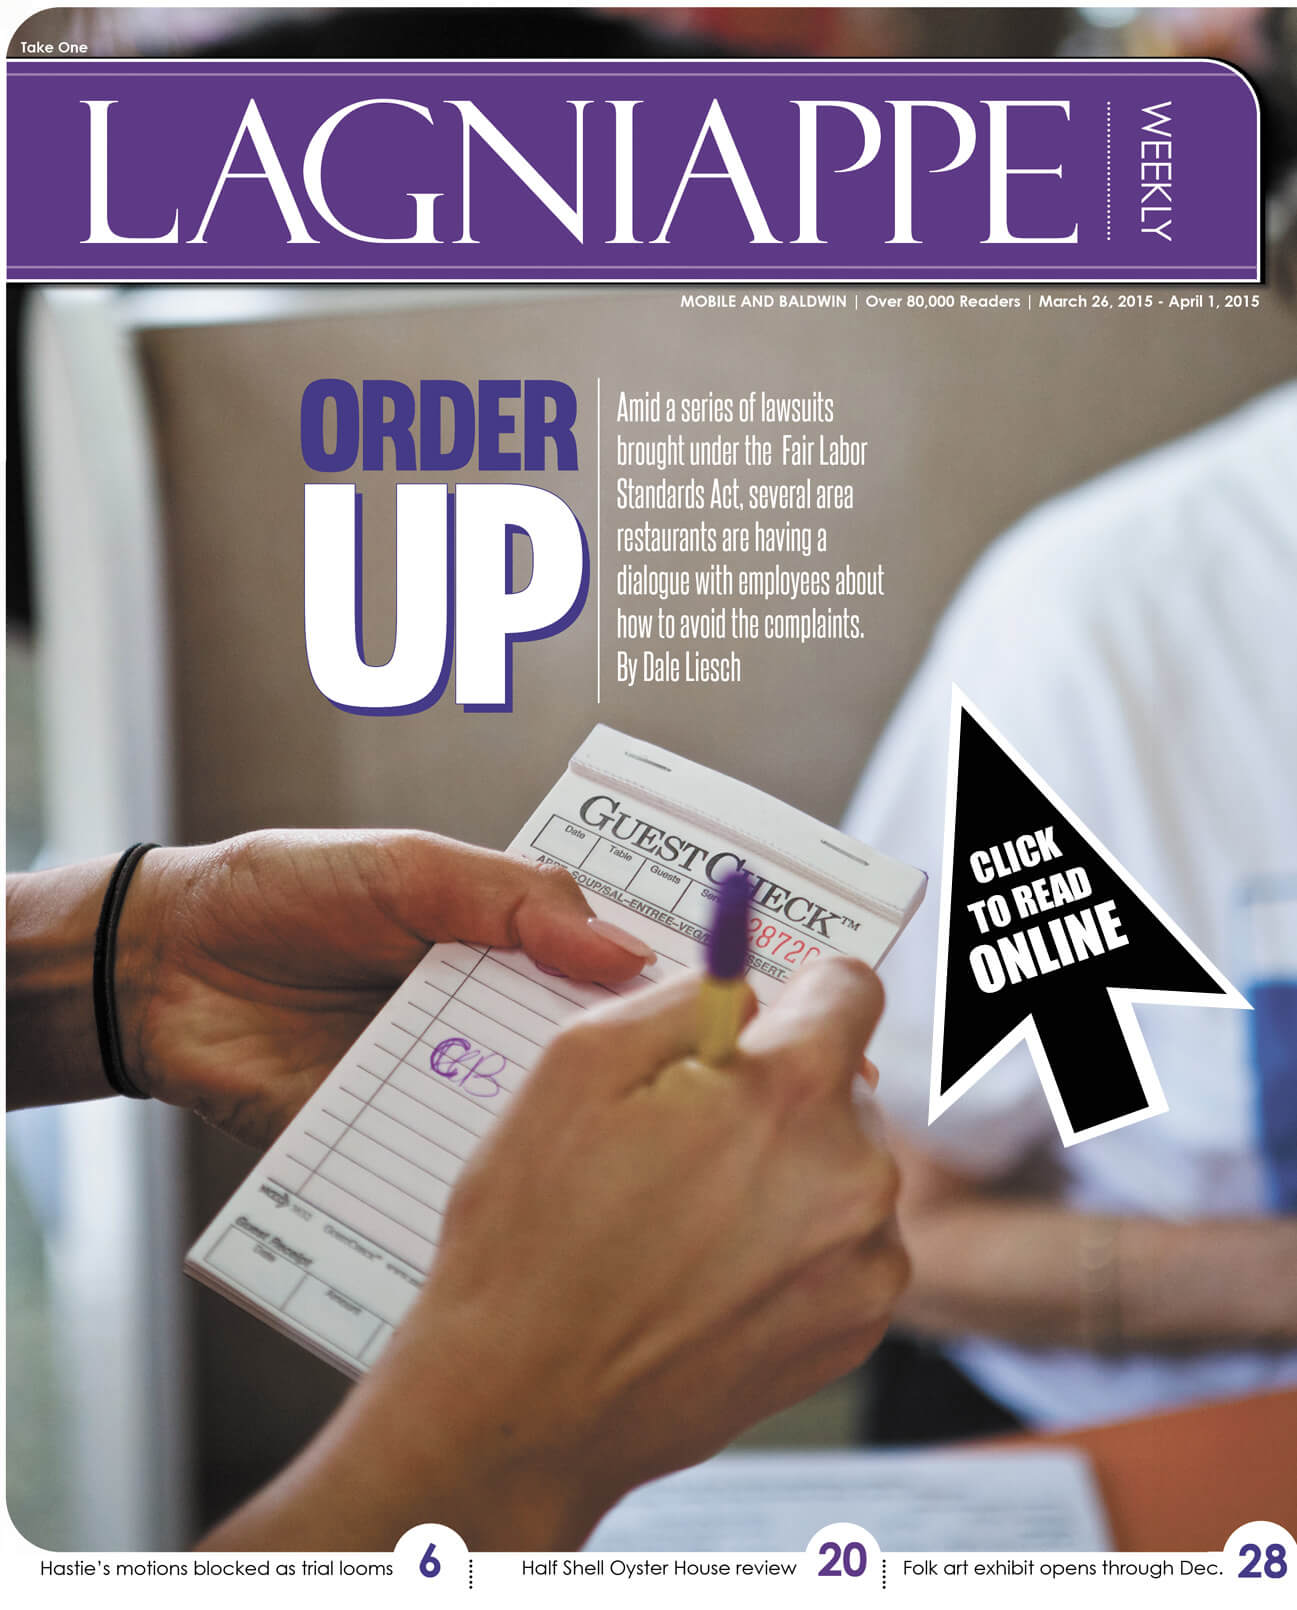 Lagniappe March 26-April 1